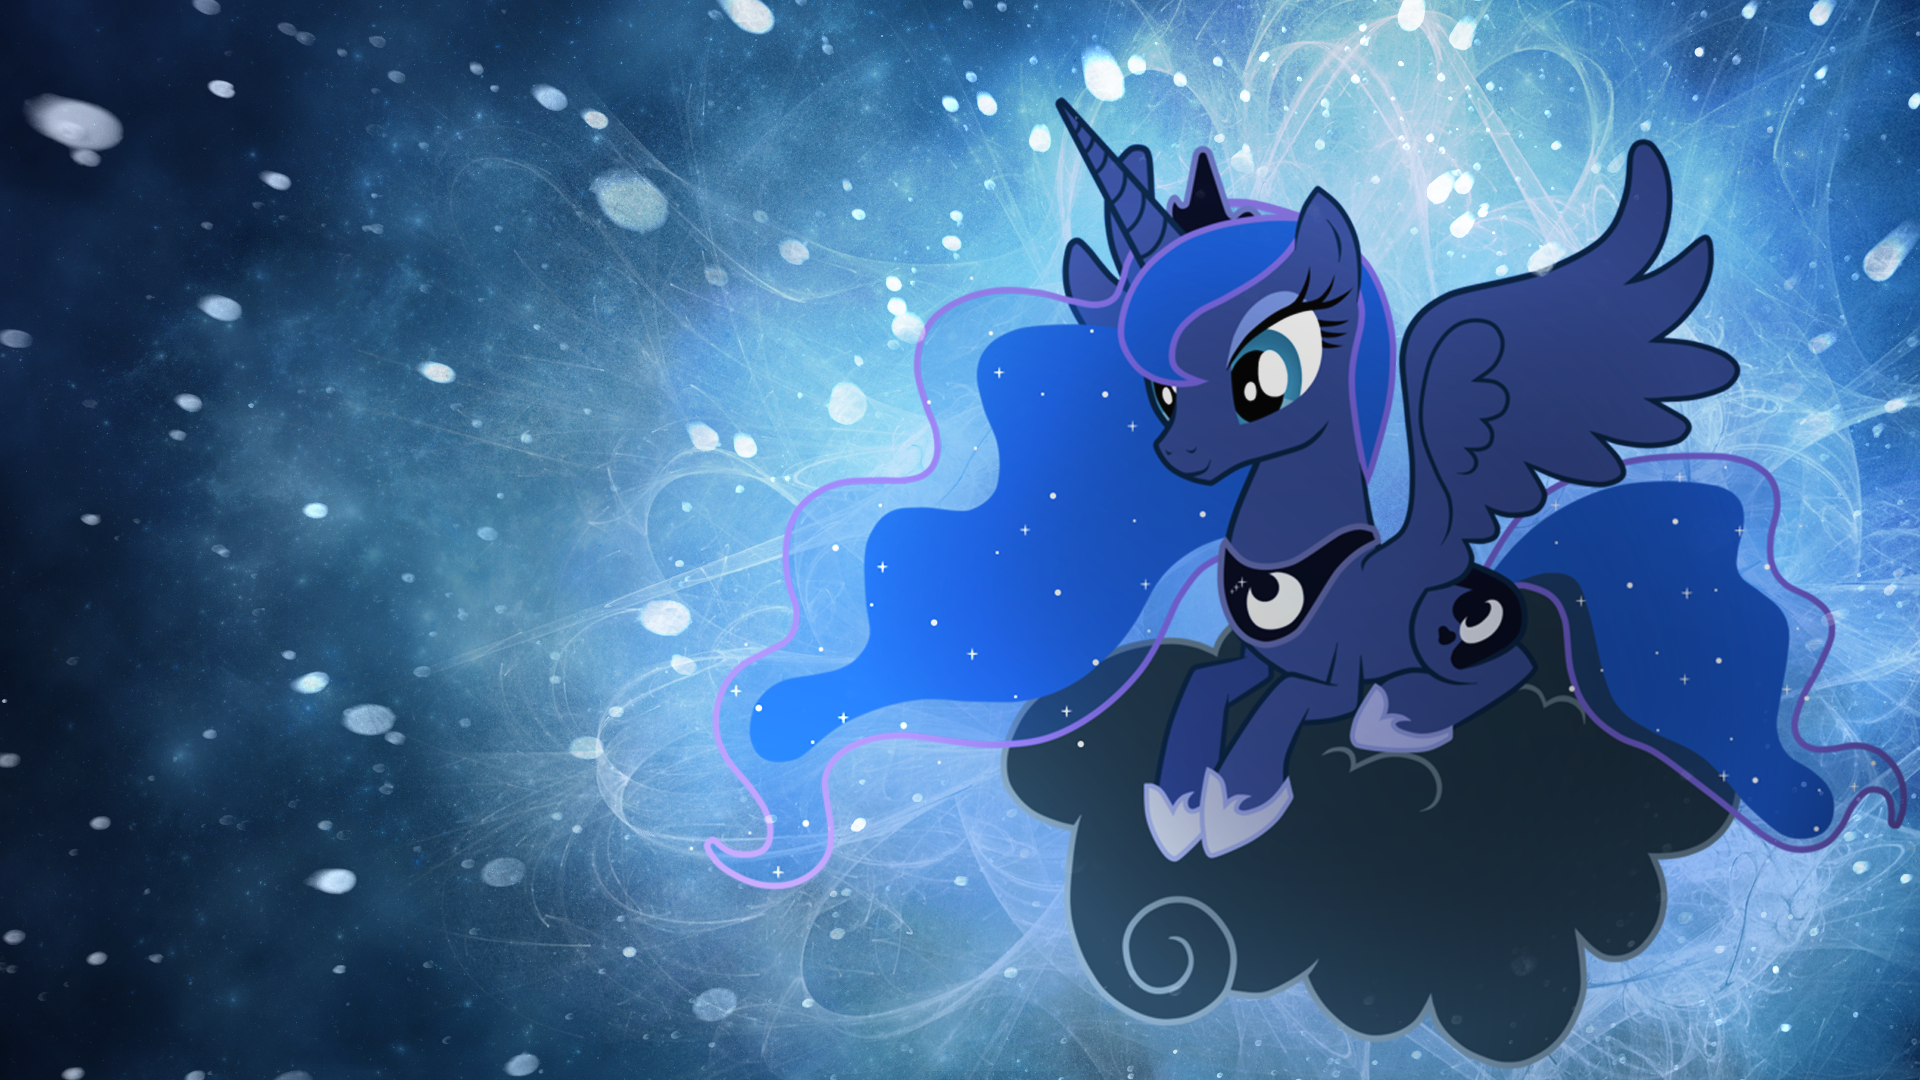 Crystal-Heart Images Princess Luna Wallpaper HD Wallpaper ...